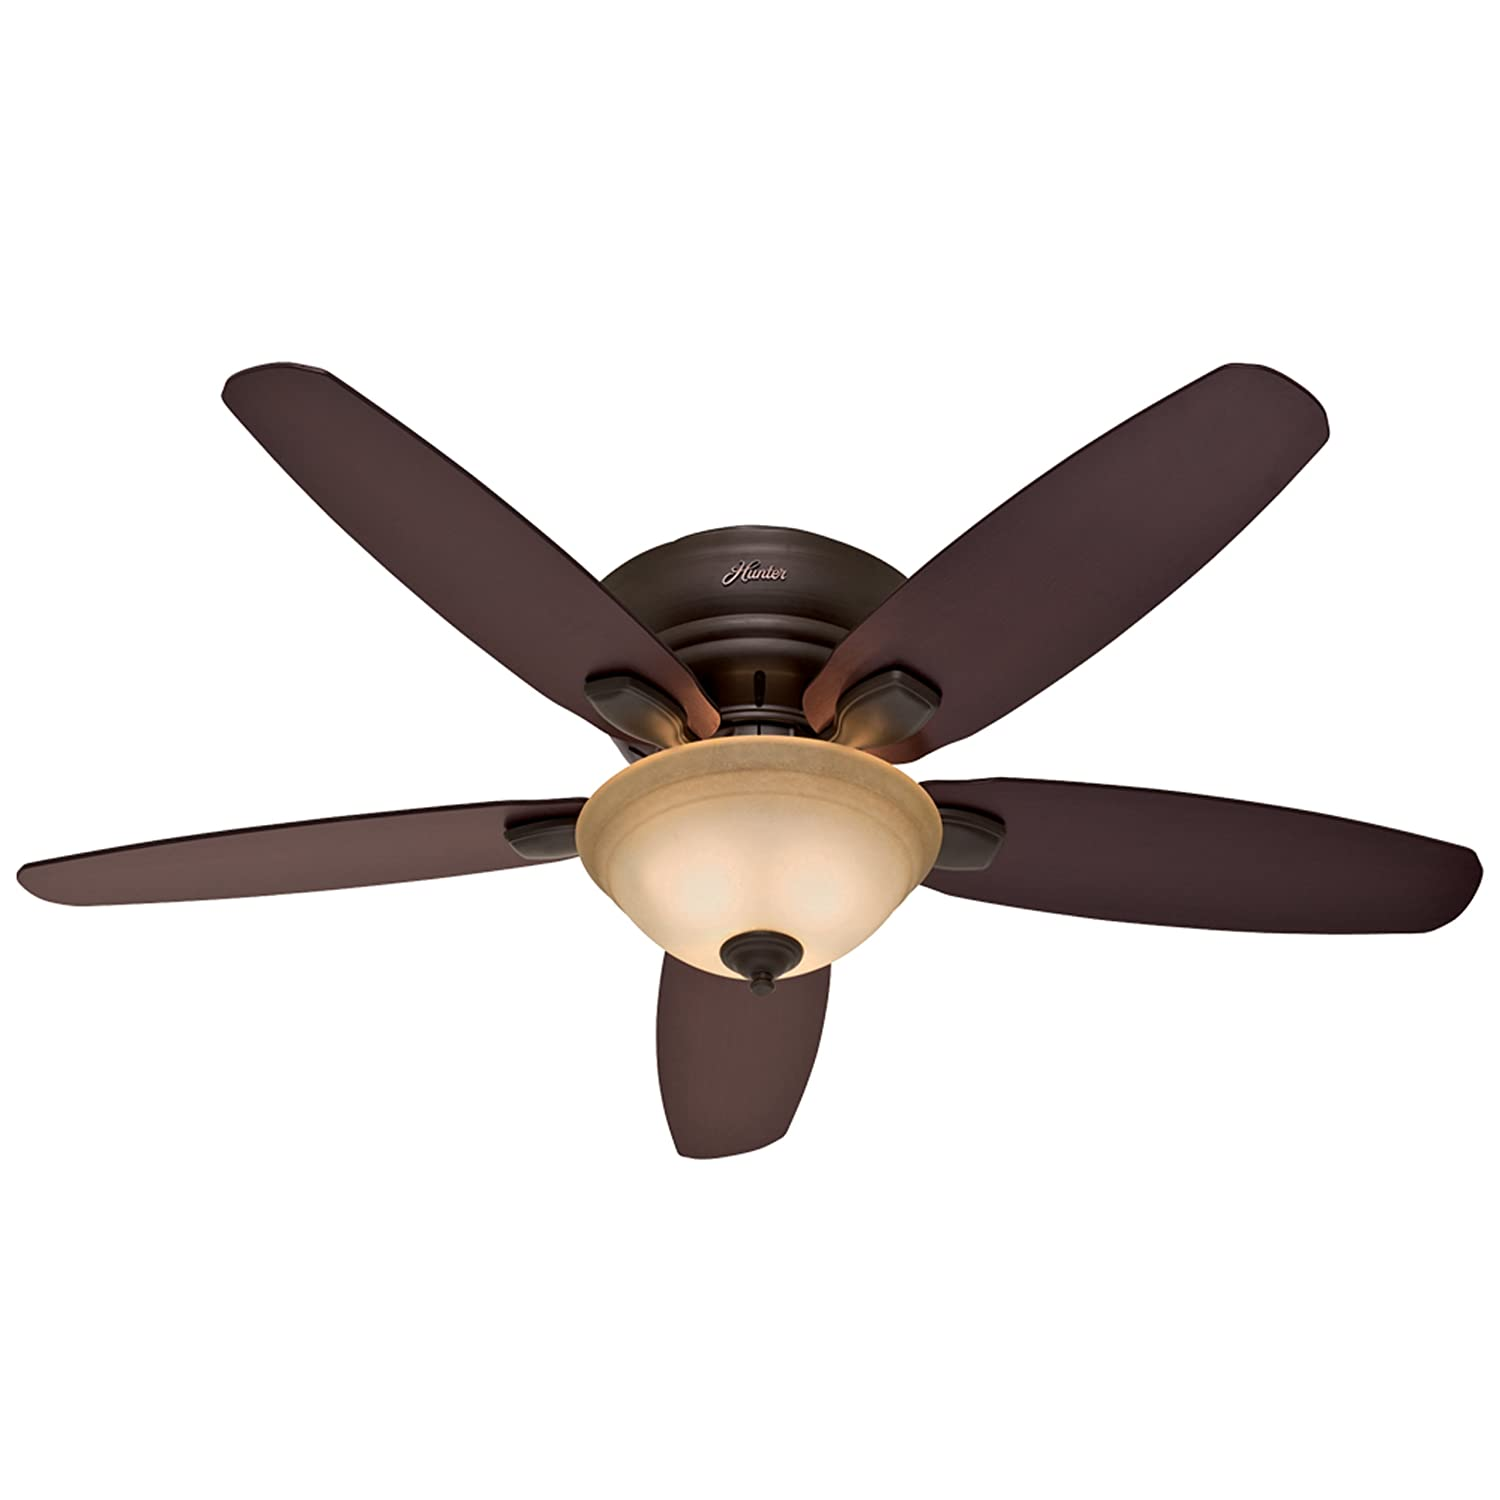 Fan Blades For Small Motors : Replacement plastic ceiling fan blades